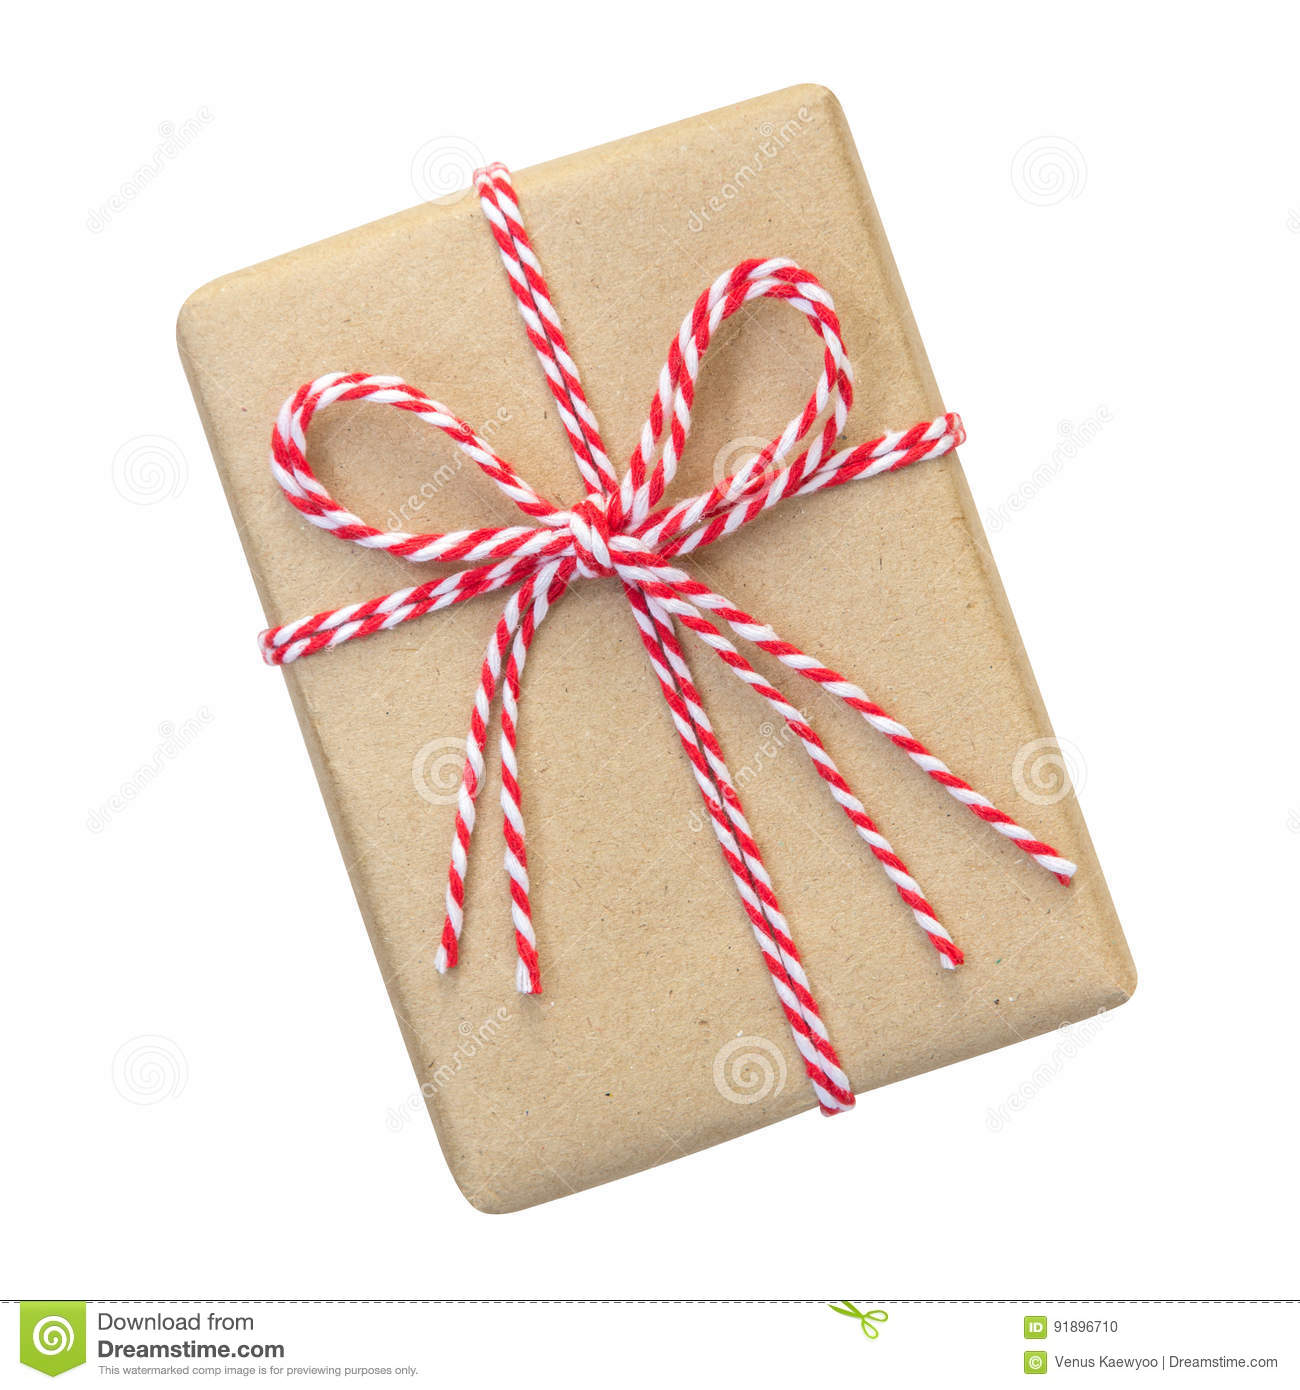 Gift box wrapped in brown recycled paper with red and white rope